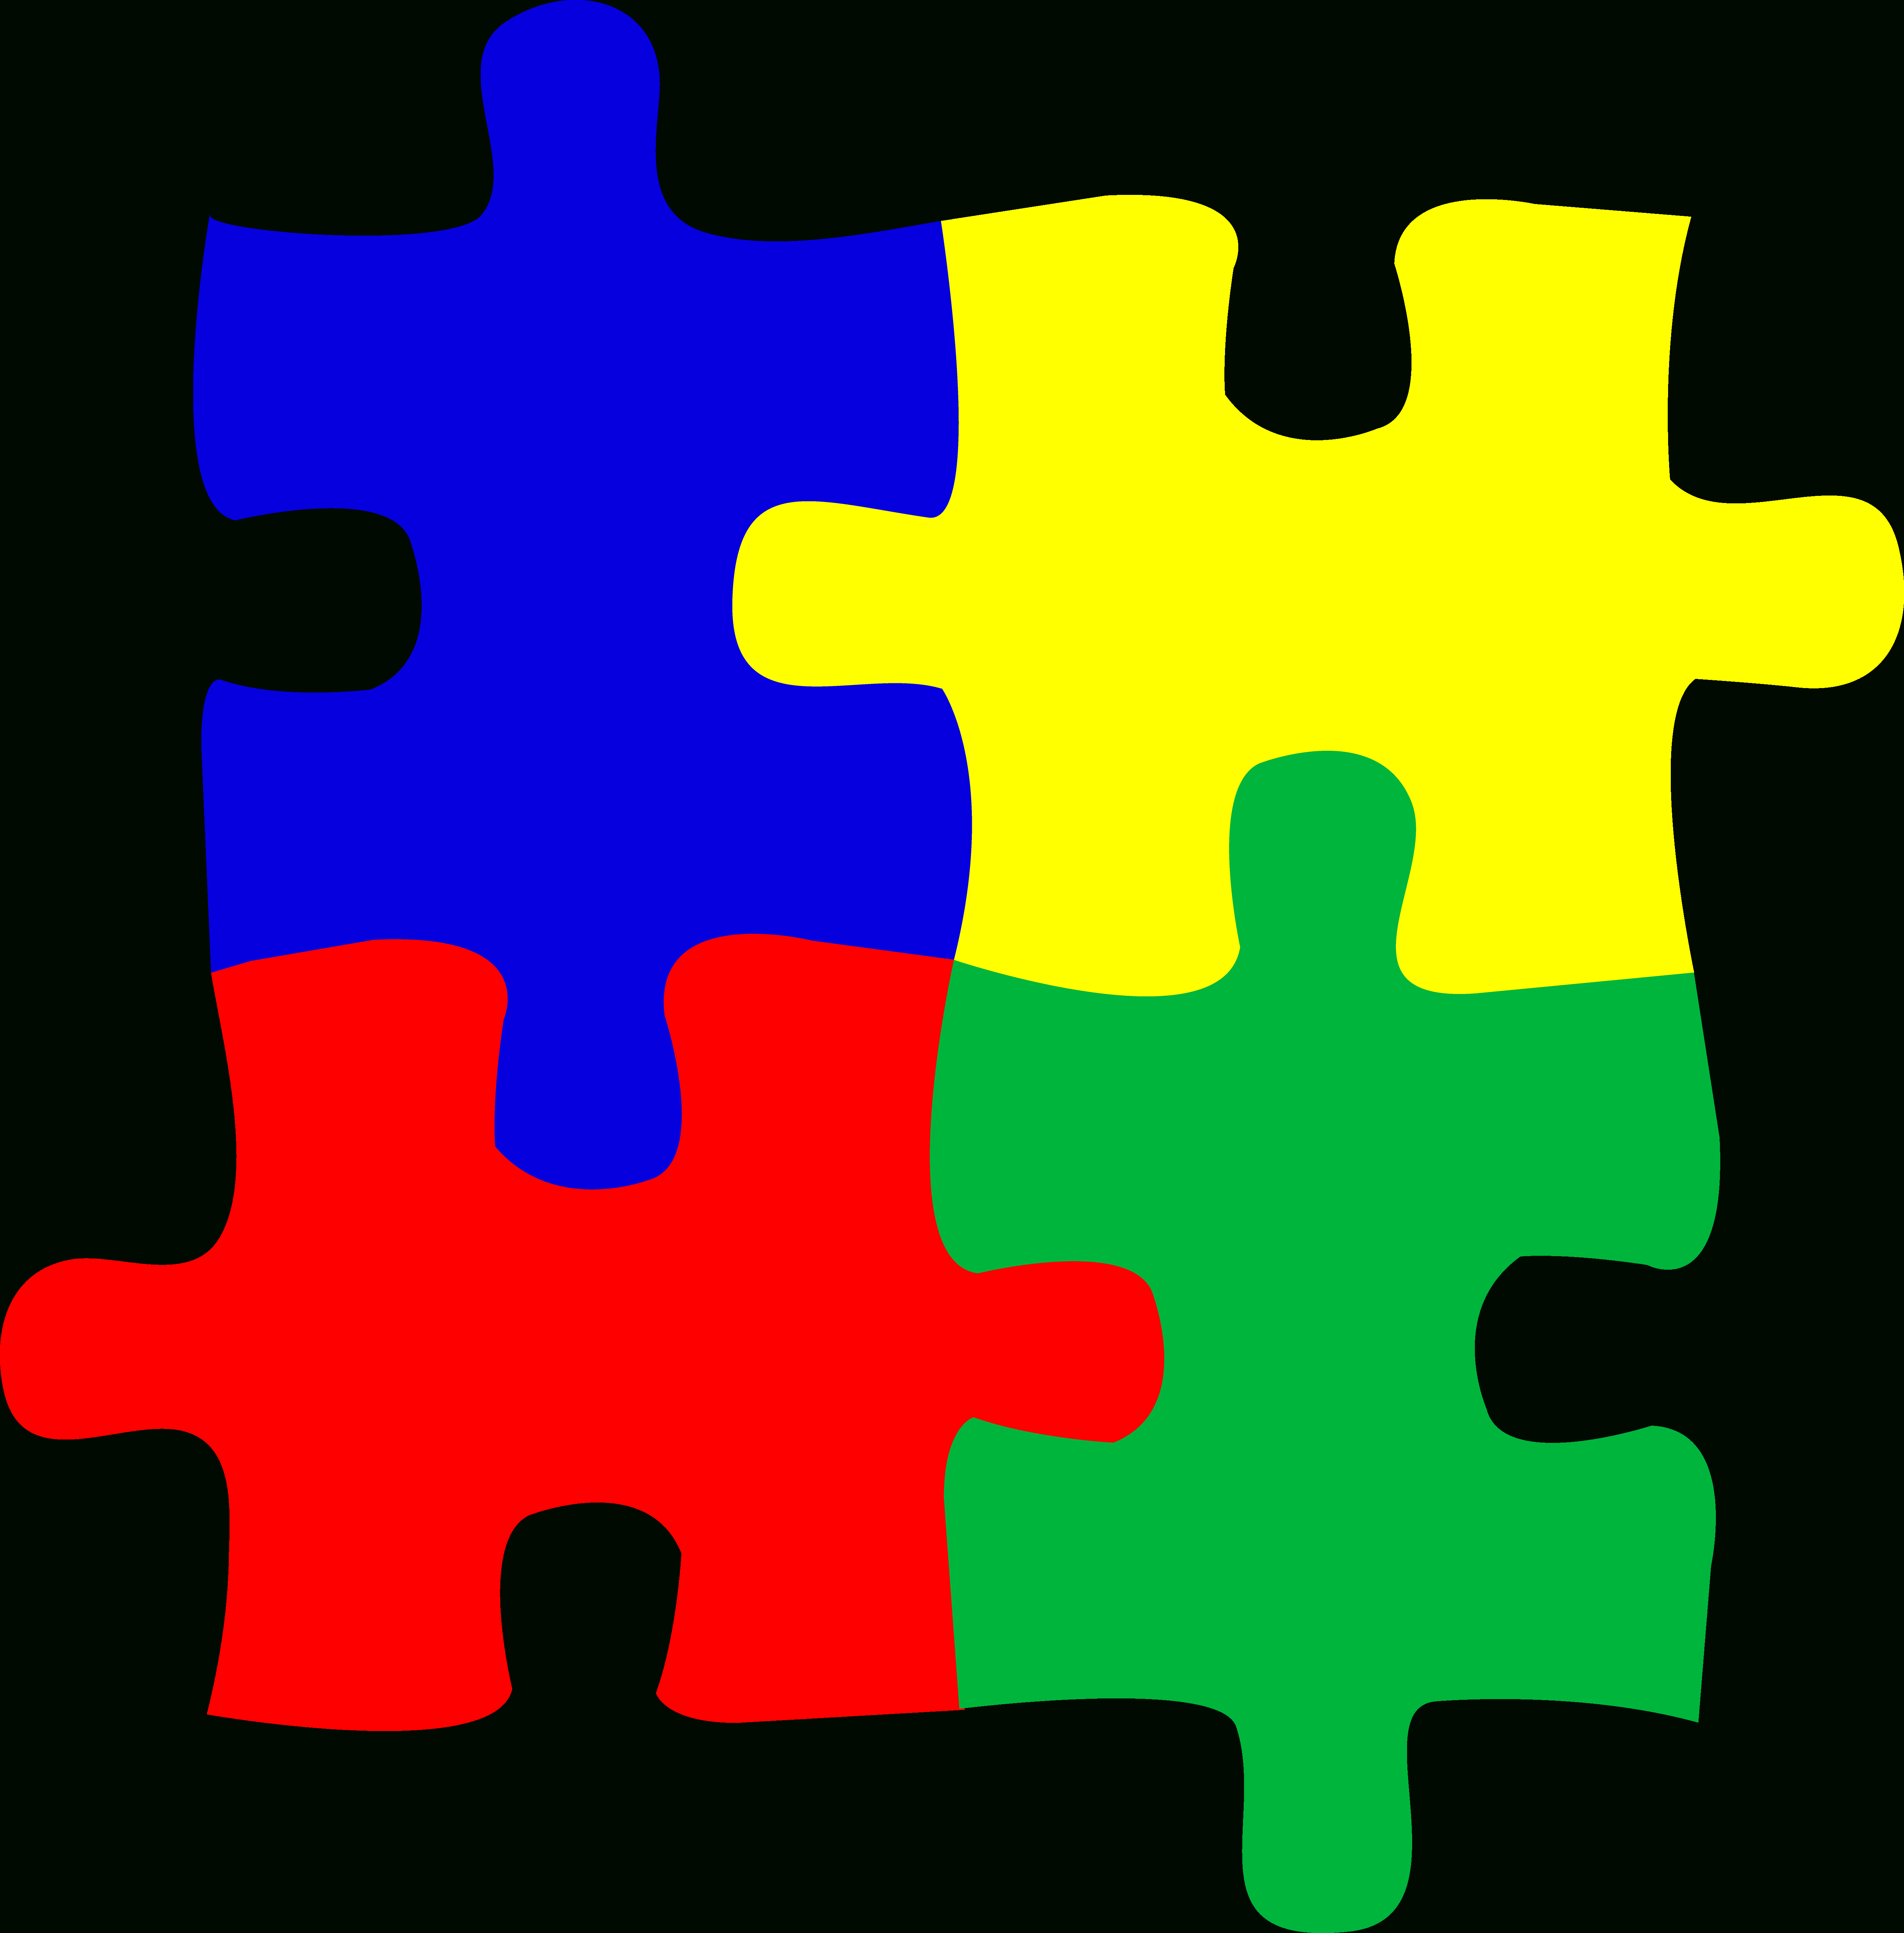 Free Puzzle Piece Clipart, Download Free Clip Art, Free Clip Art On - Printable Colored Puzzle Pieces